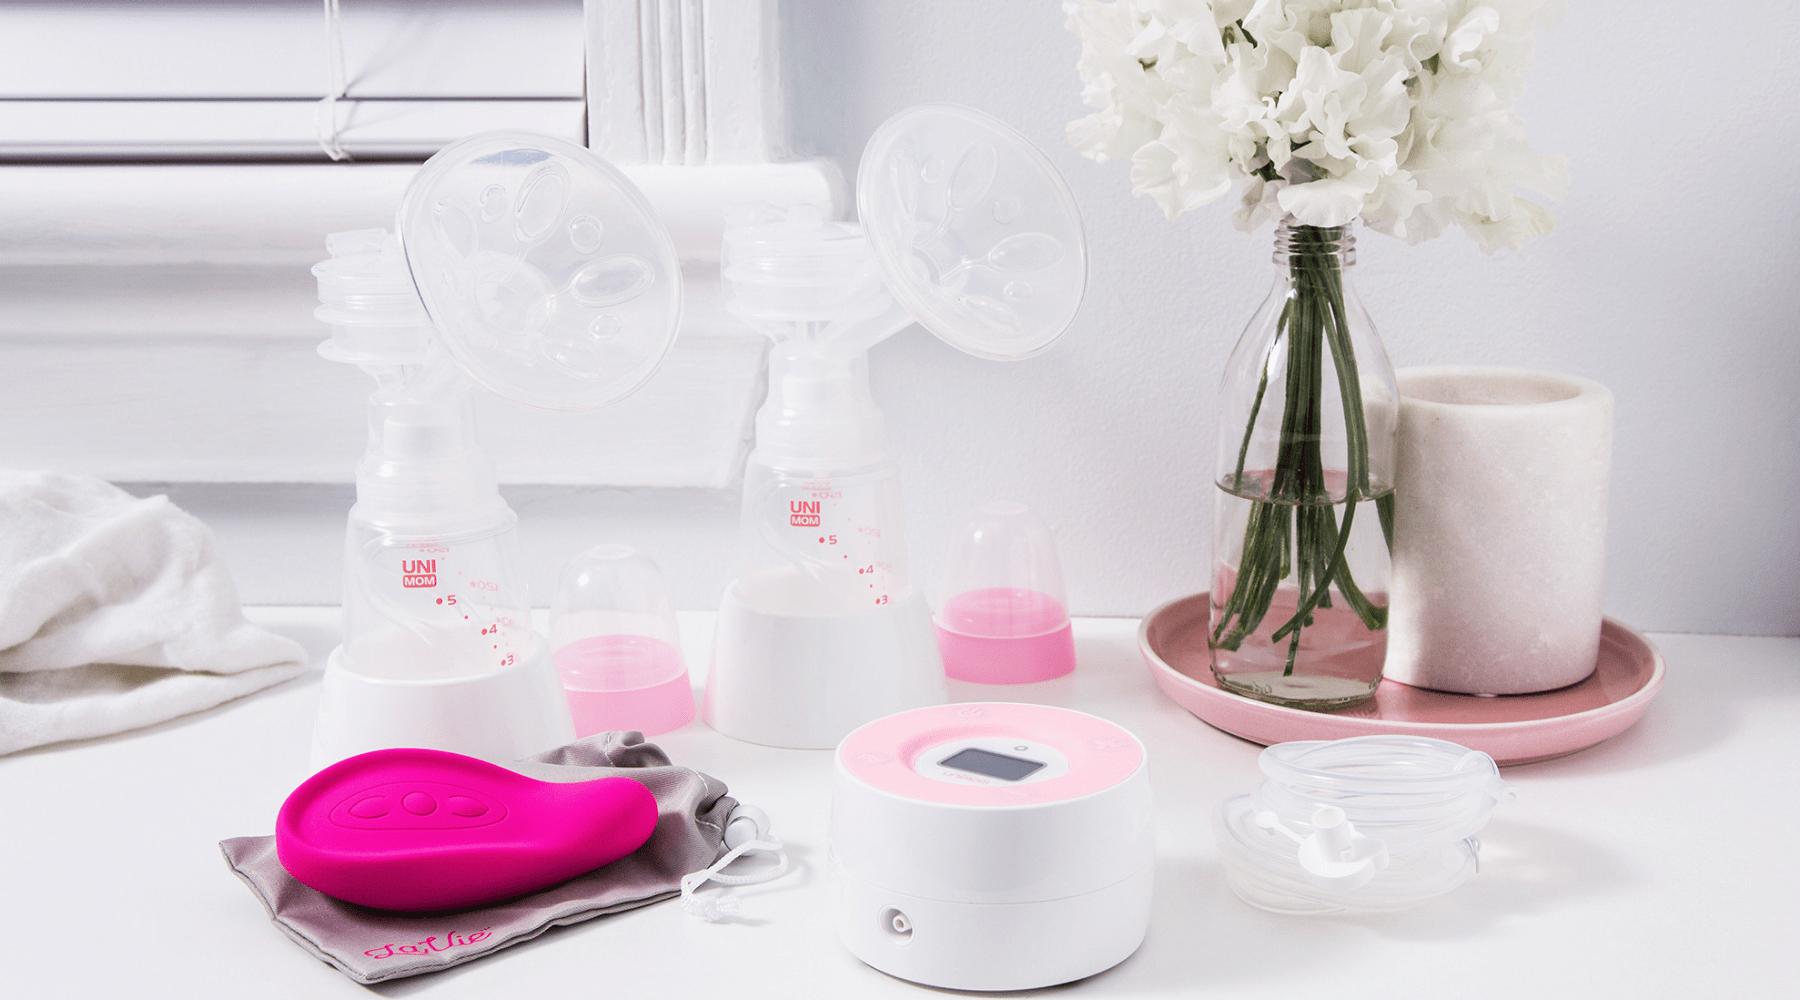 Unimom Breast Pumps